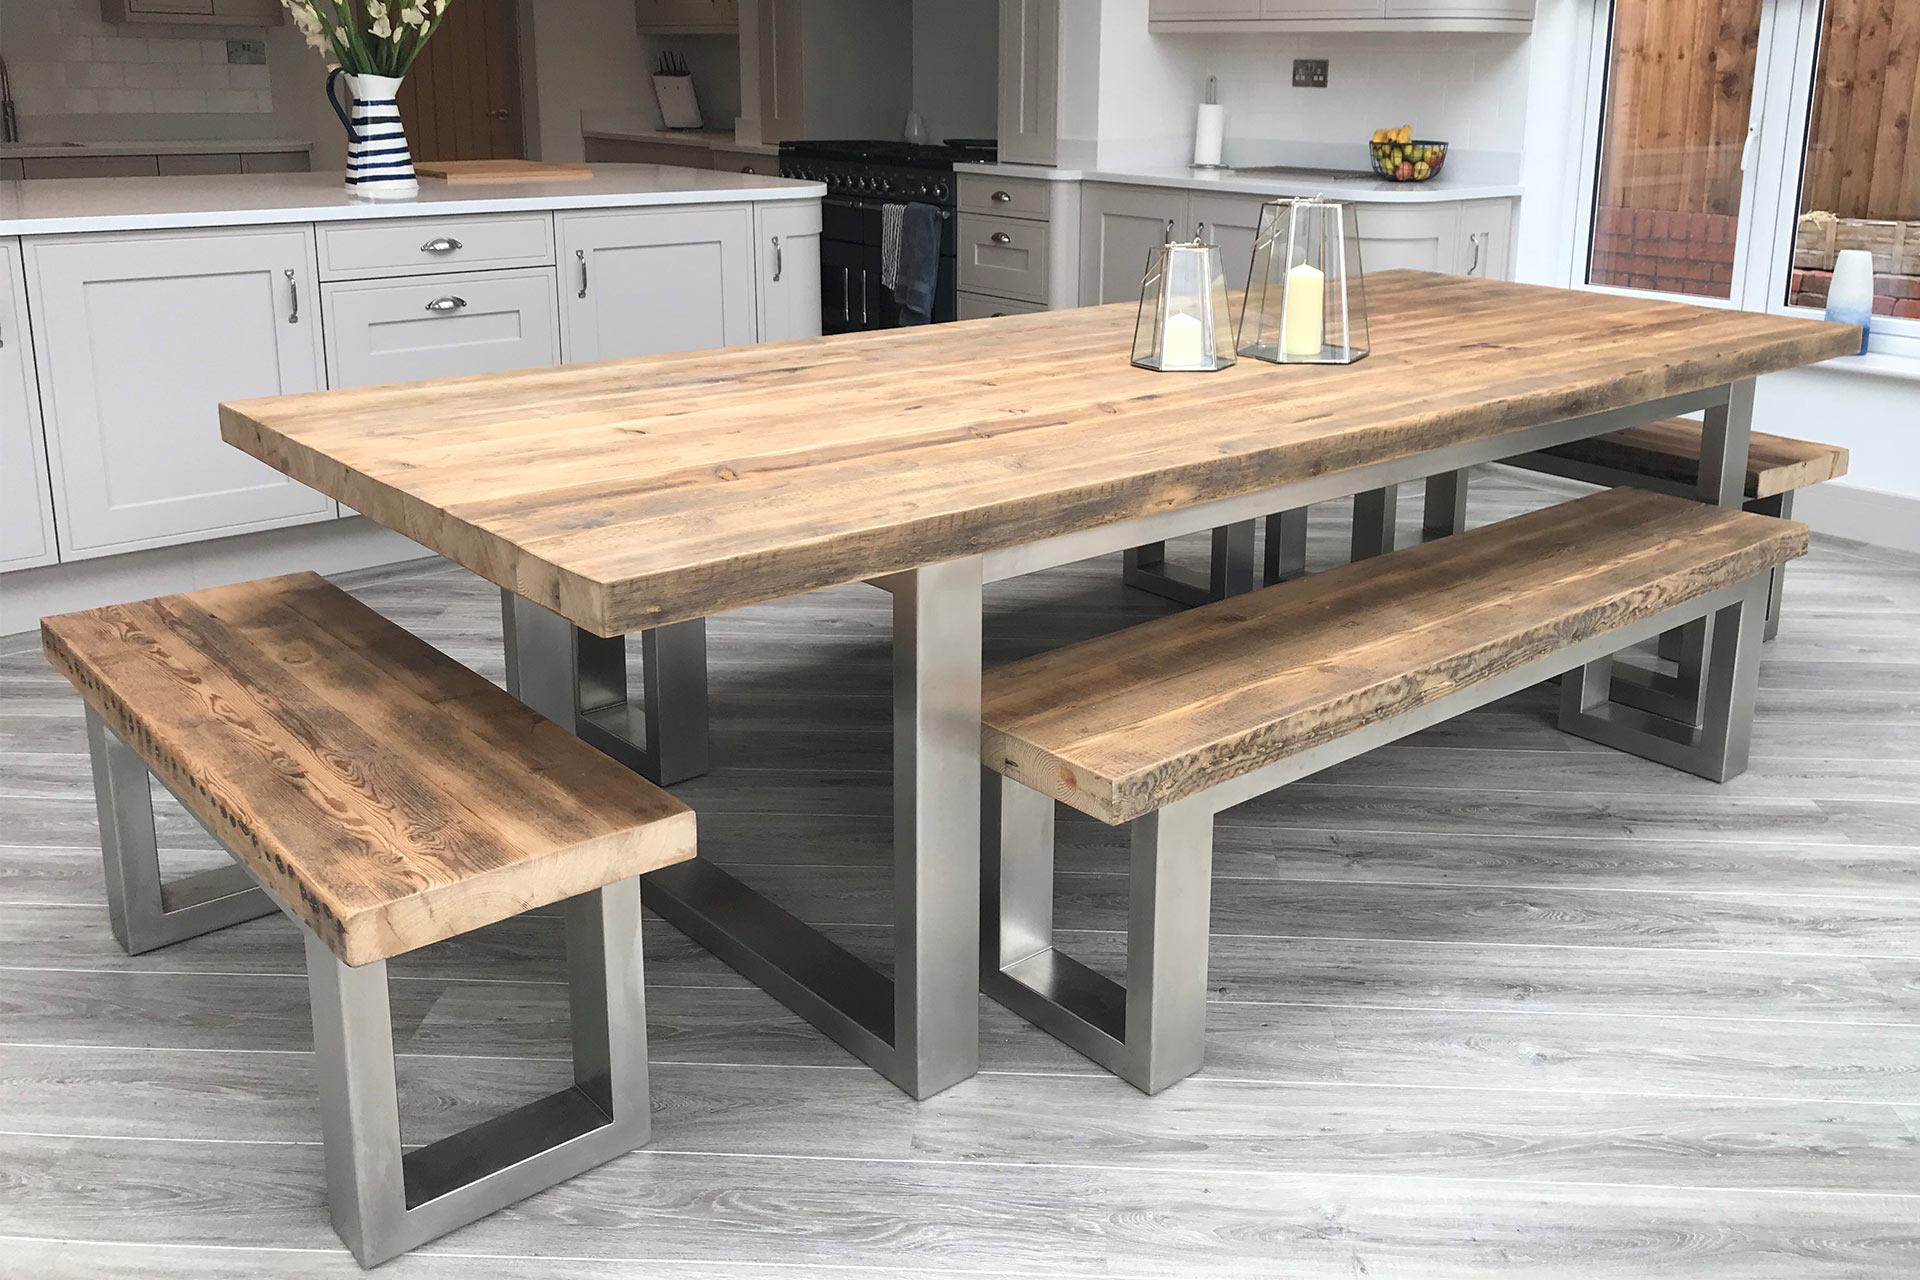 Reclaimed Wood Dining Table Rustic